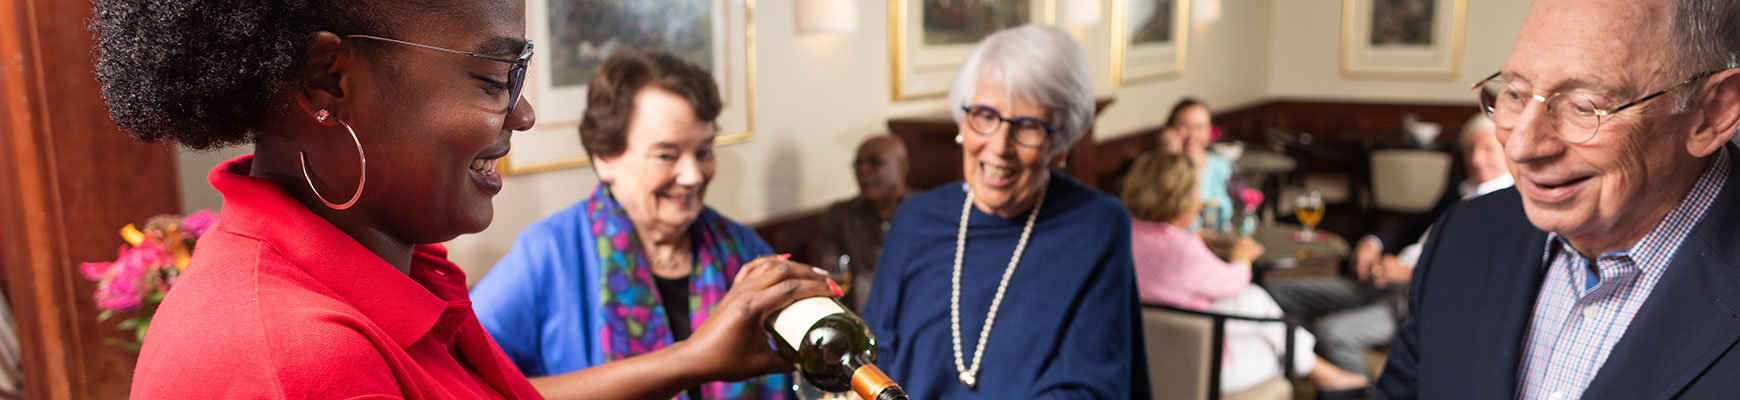 A server is pouring drinks for seniors during happy hour